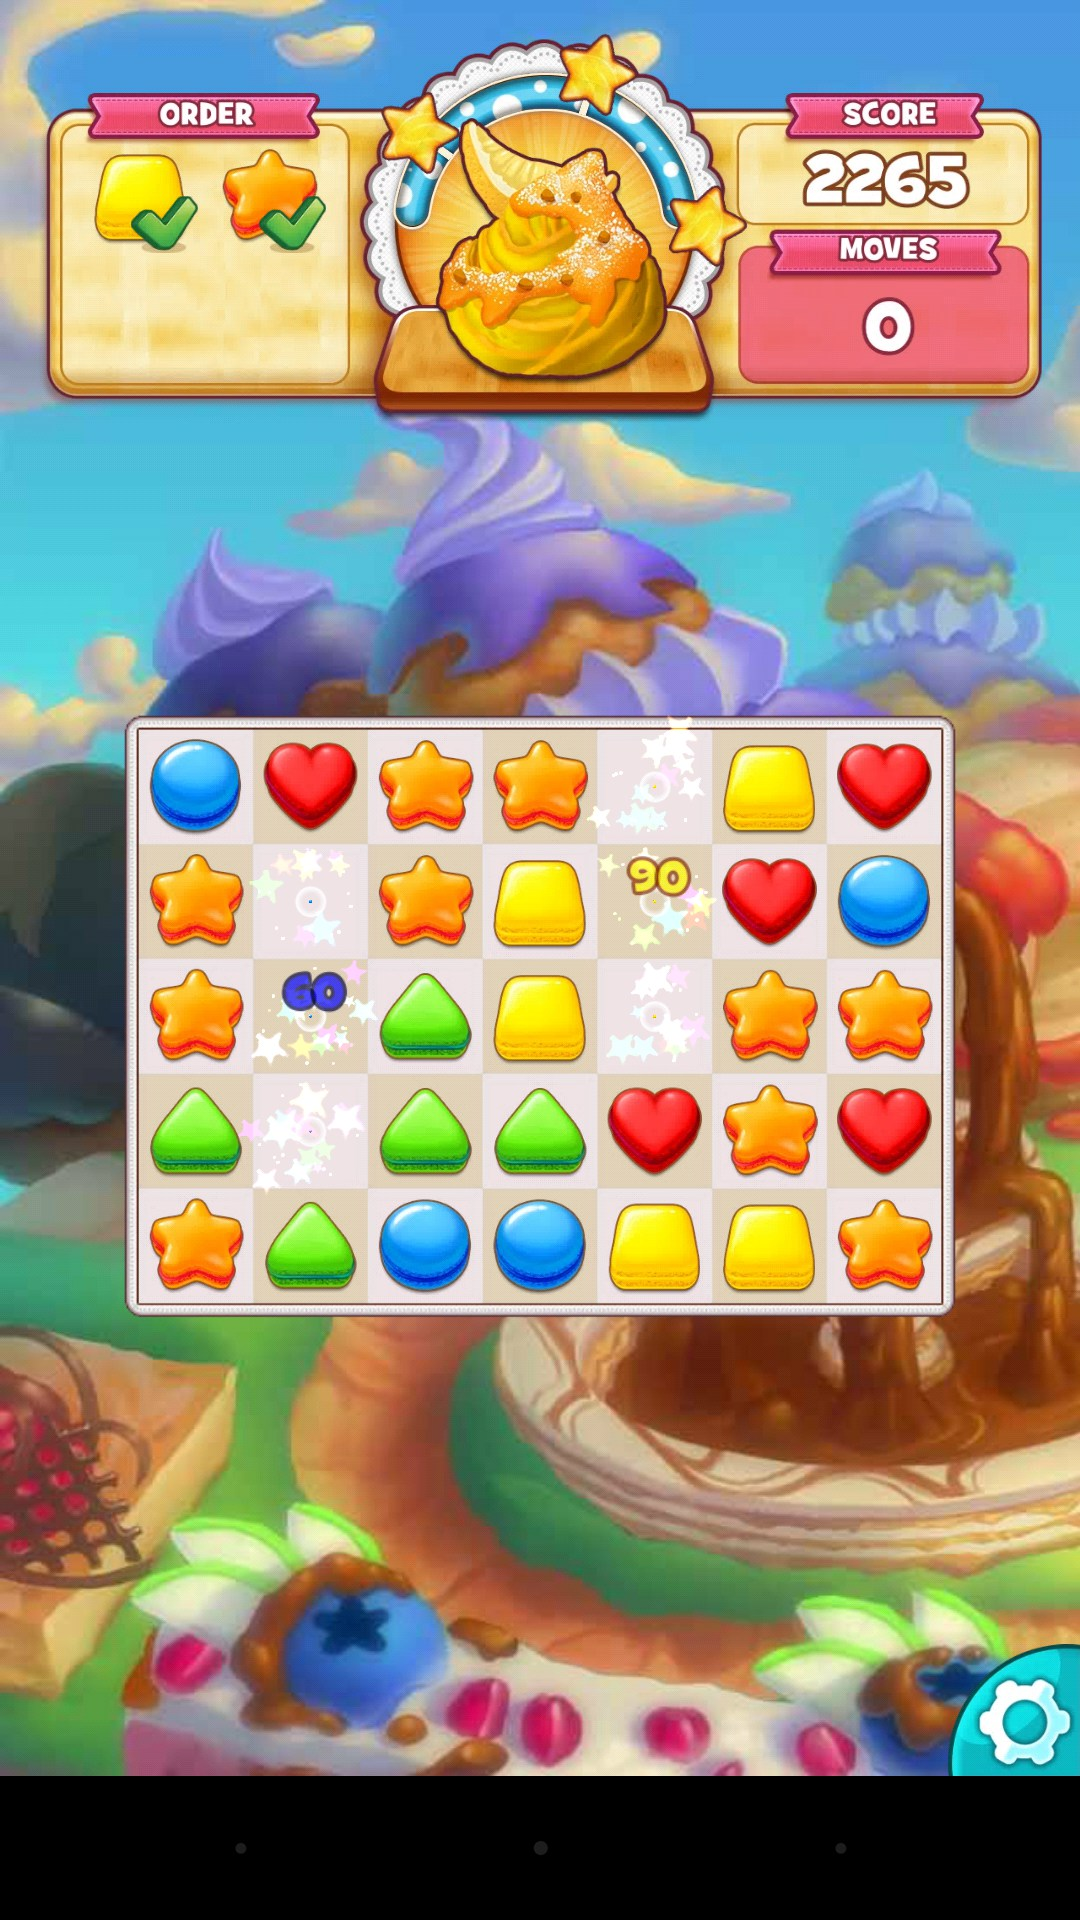 Cookie Jam – Games for Android 2018 – Free download. Cookie Jam – Pastry-based match 3 game that could use a pick-me-up.